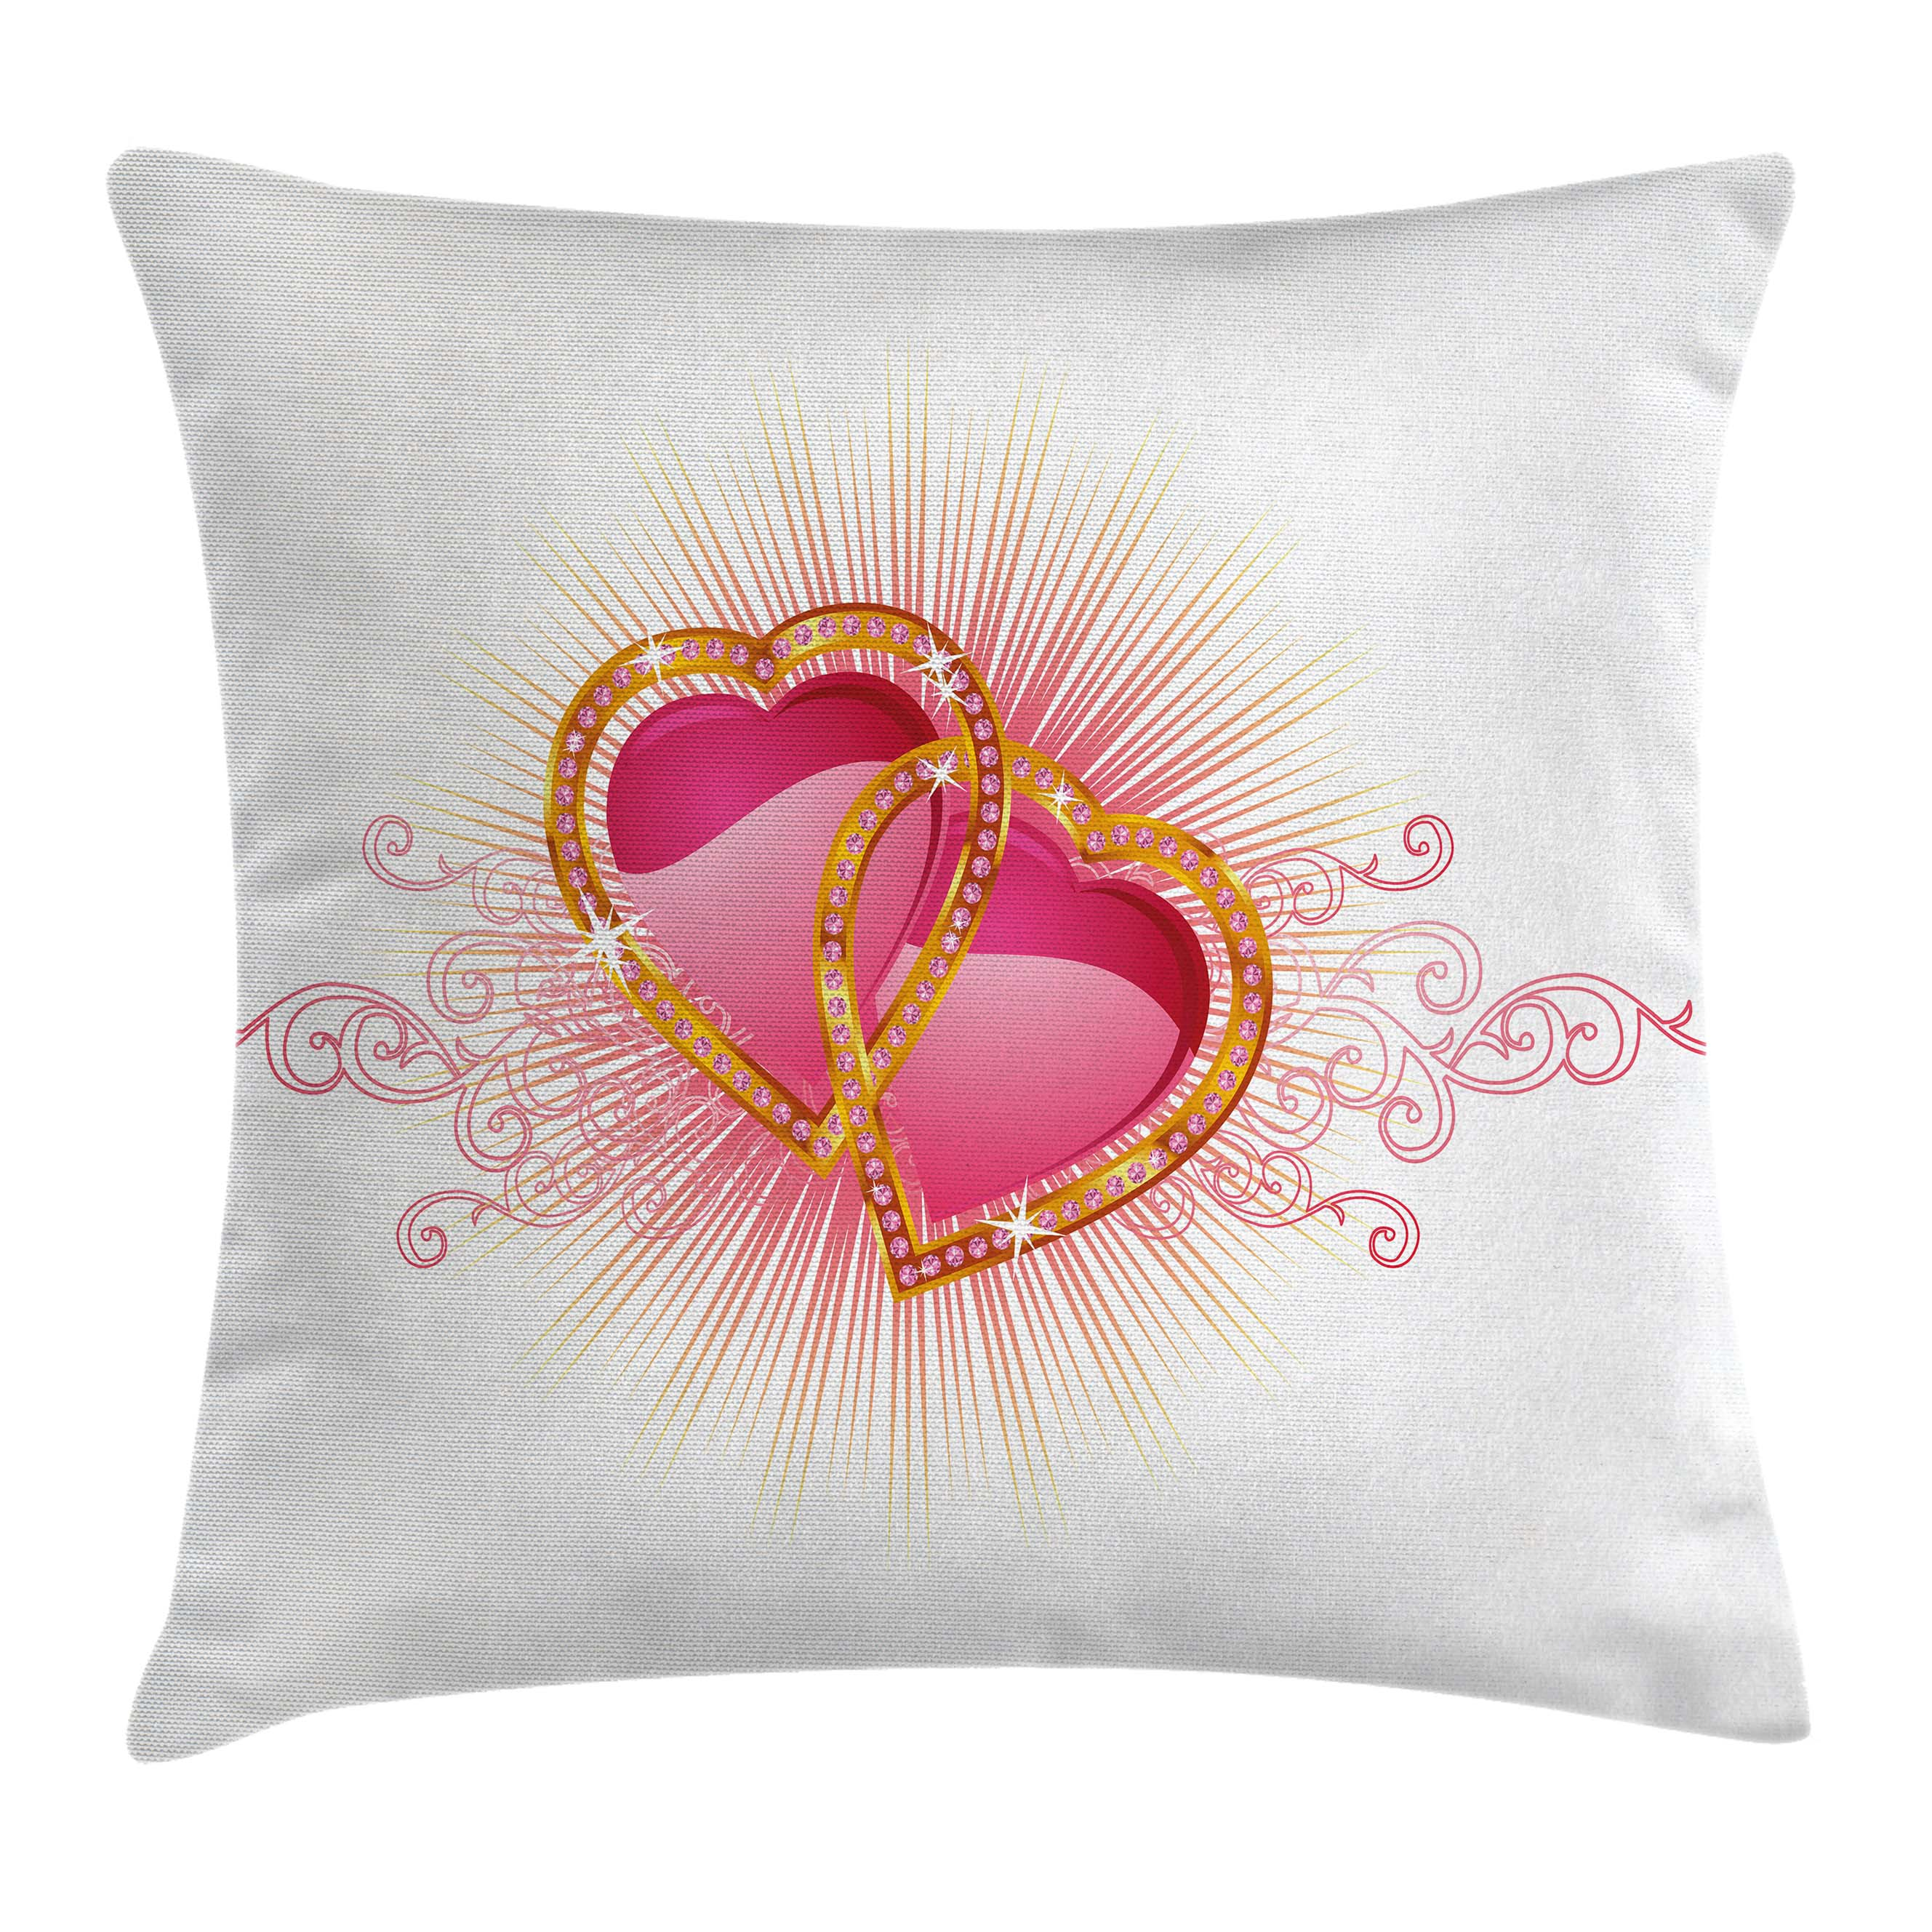 Engagement Party Decorations Throw Pillow Cushion Cover, Romantic Hearts for Engagement Party Swirls Image, Decorative Square Accent Pillow Case, 16 X 16 Inches, Light Pink and Marigold, by Ambesonne